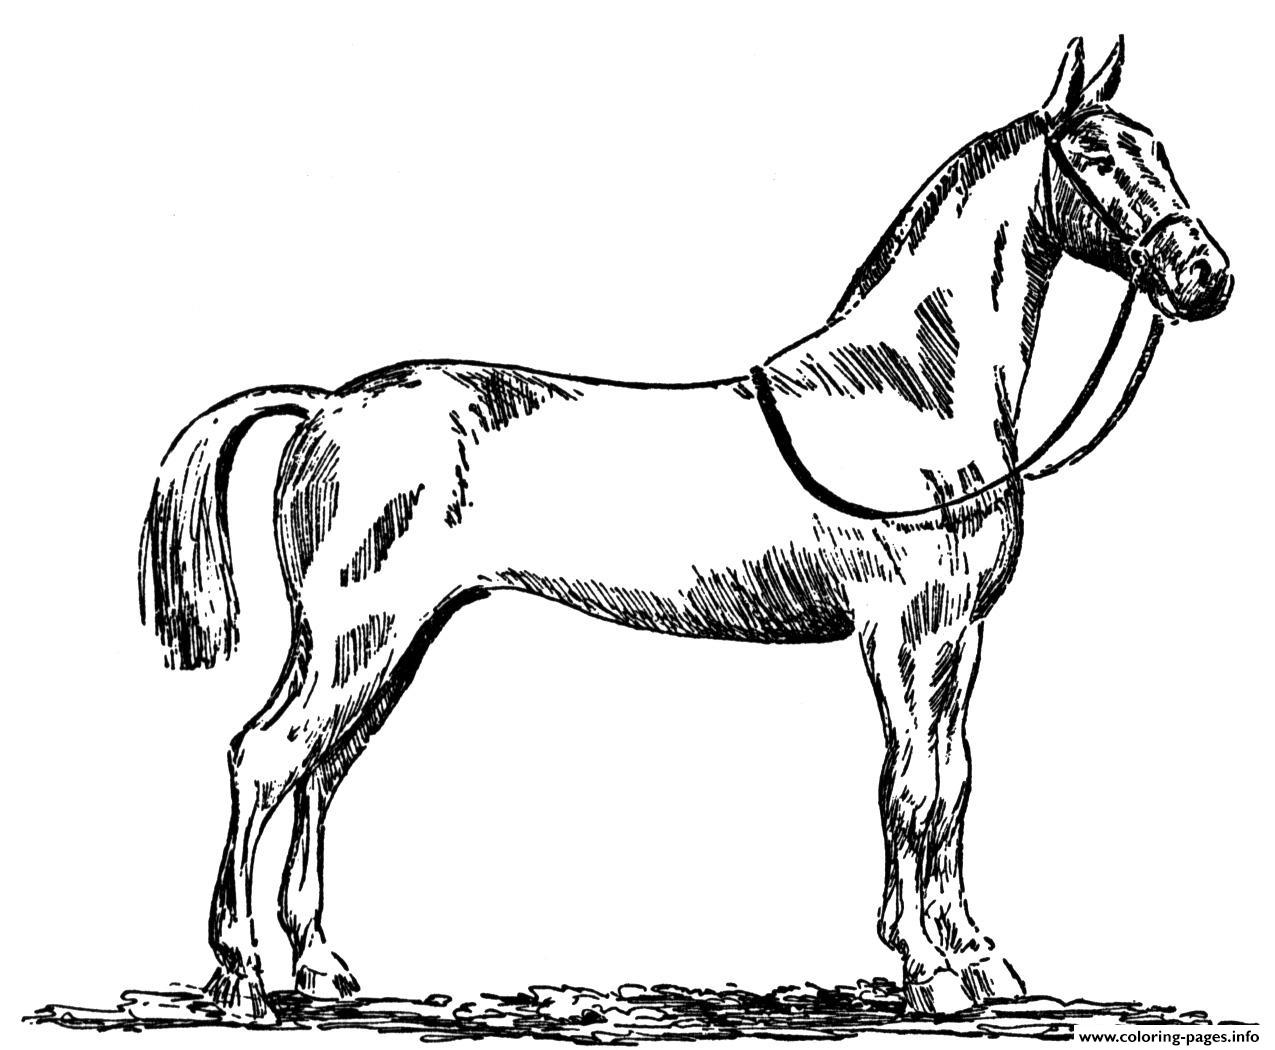 Standardbred Horse coloring pages